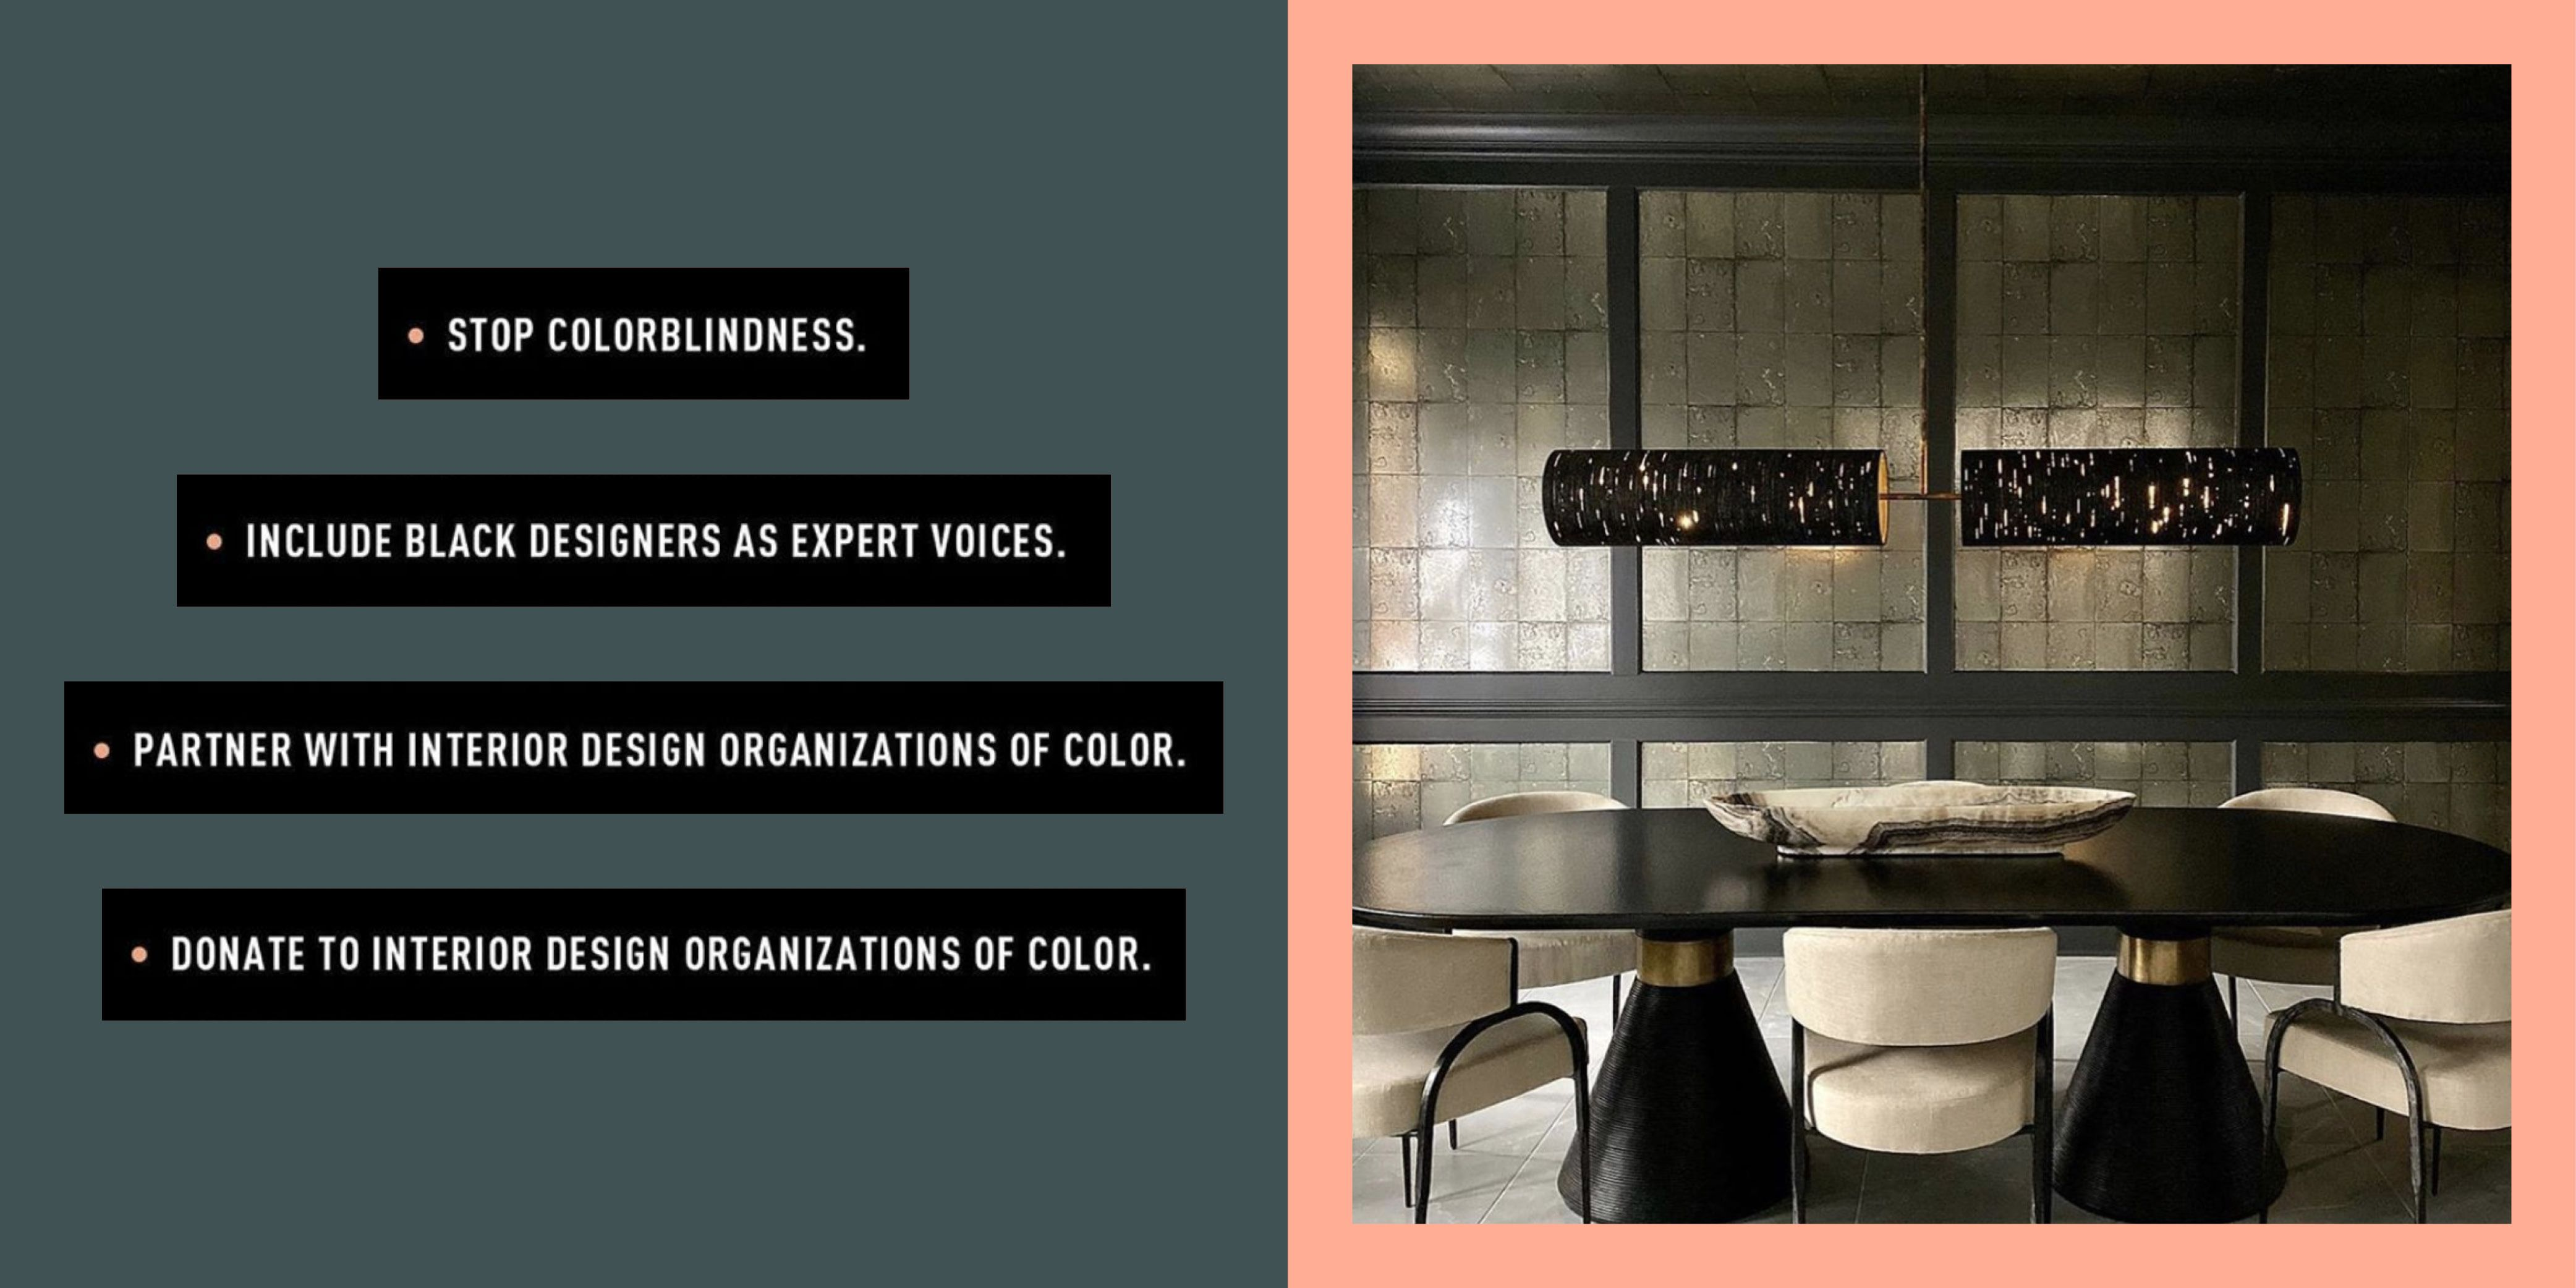 The Black Interior Designers Network Launches Campaign On How To Be An Ally